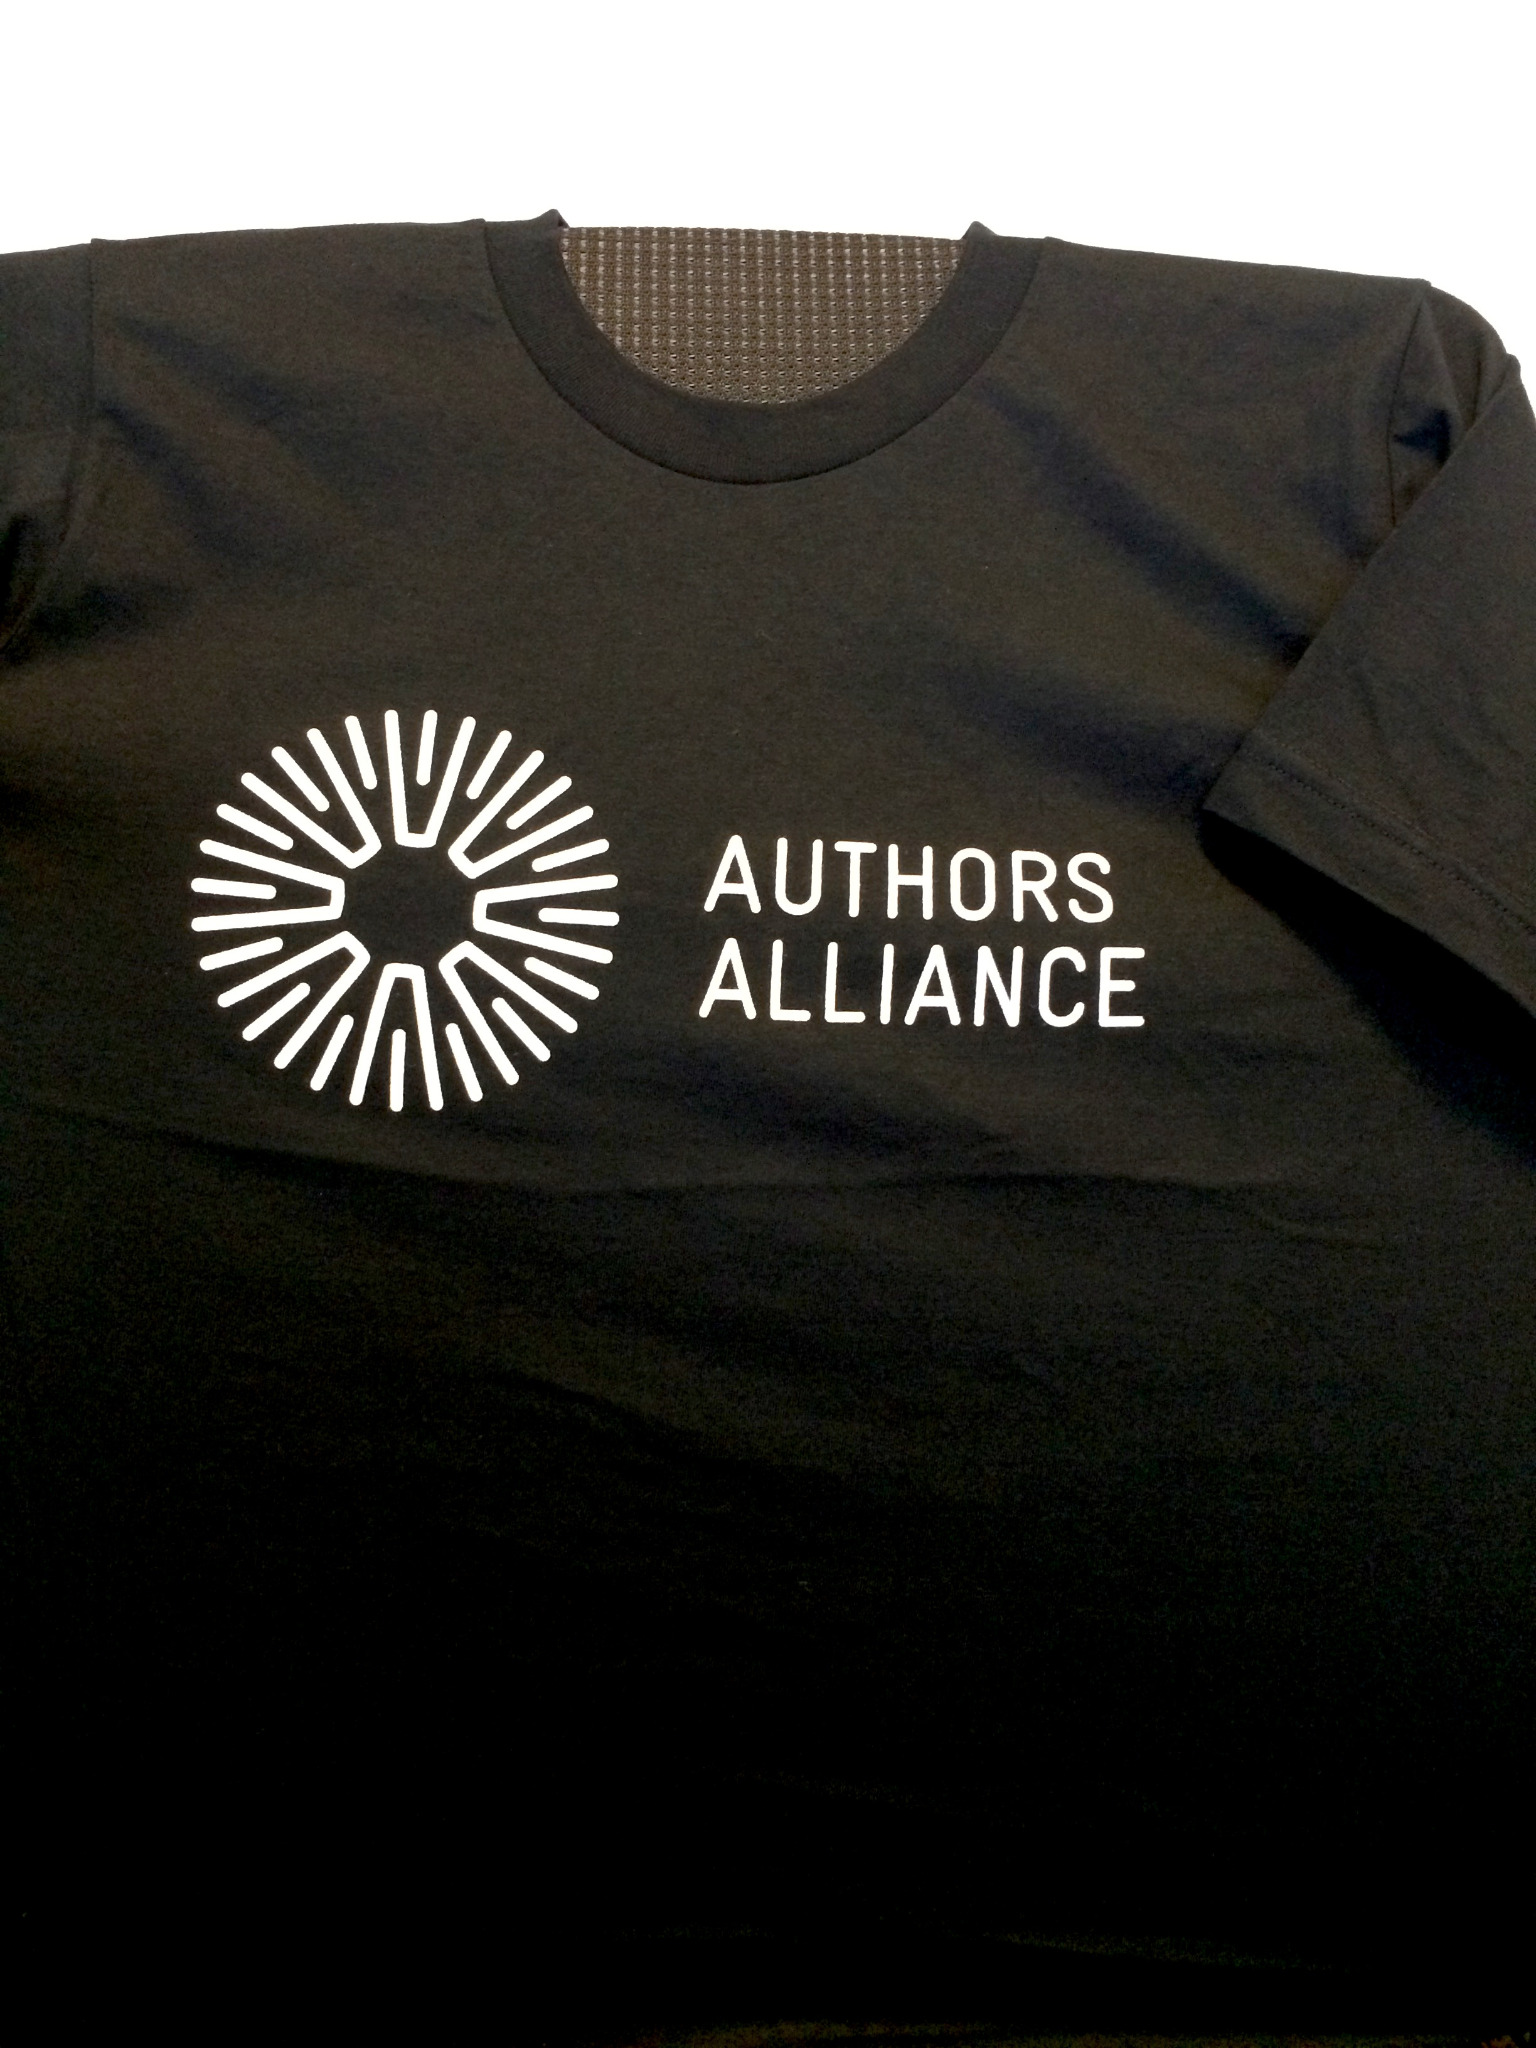 Authors Alliance T-Shirt